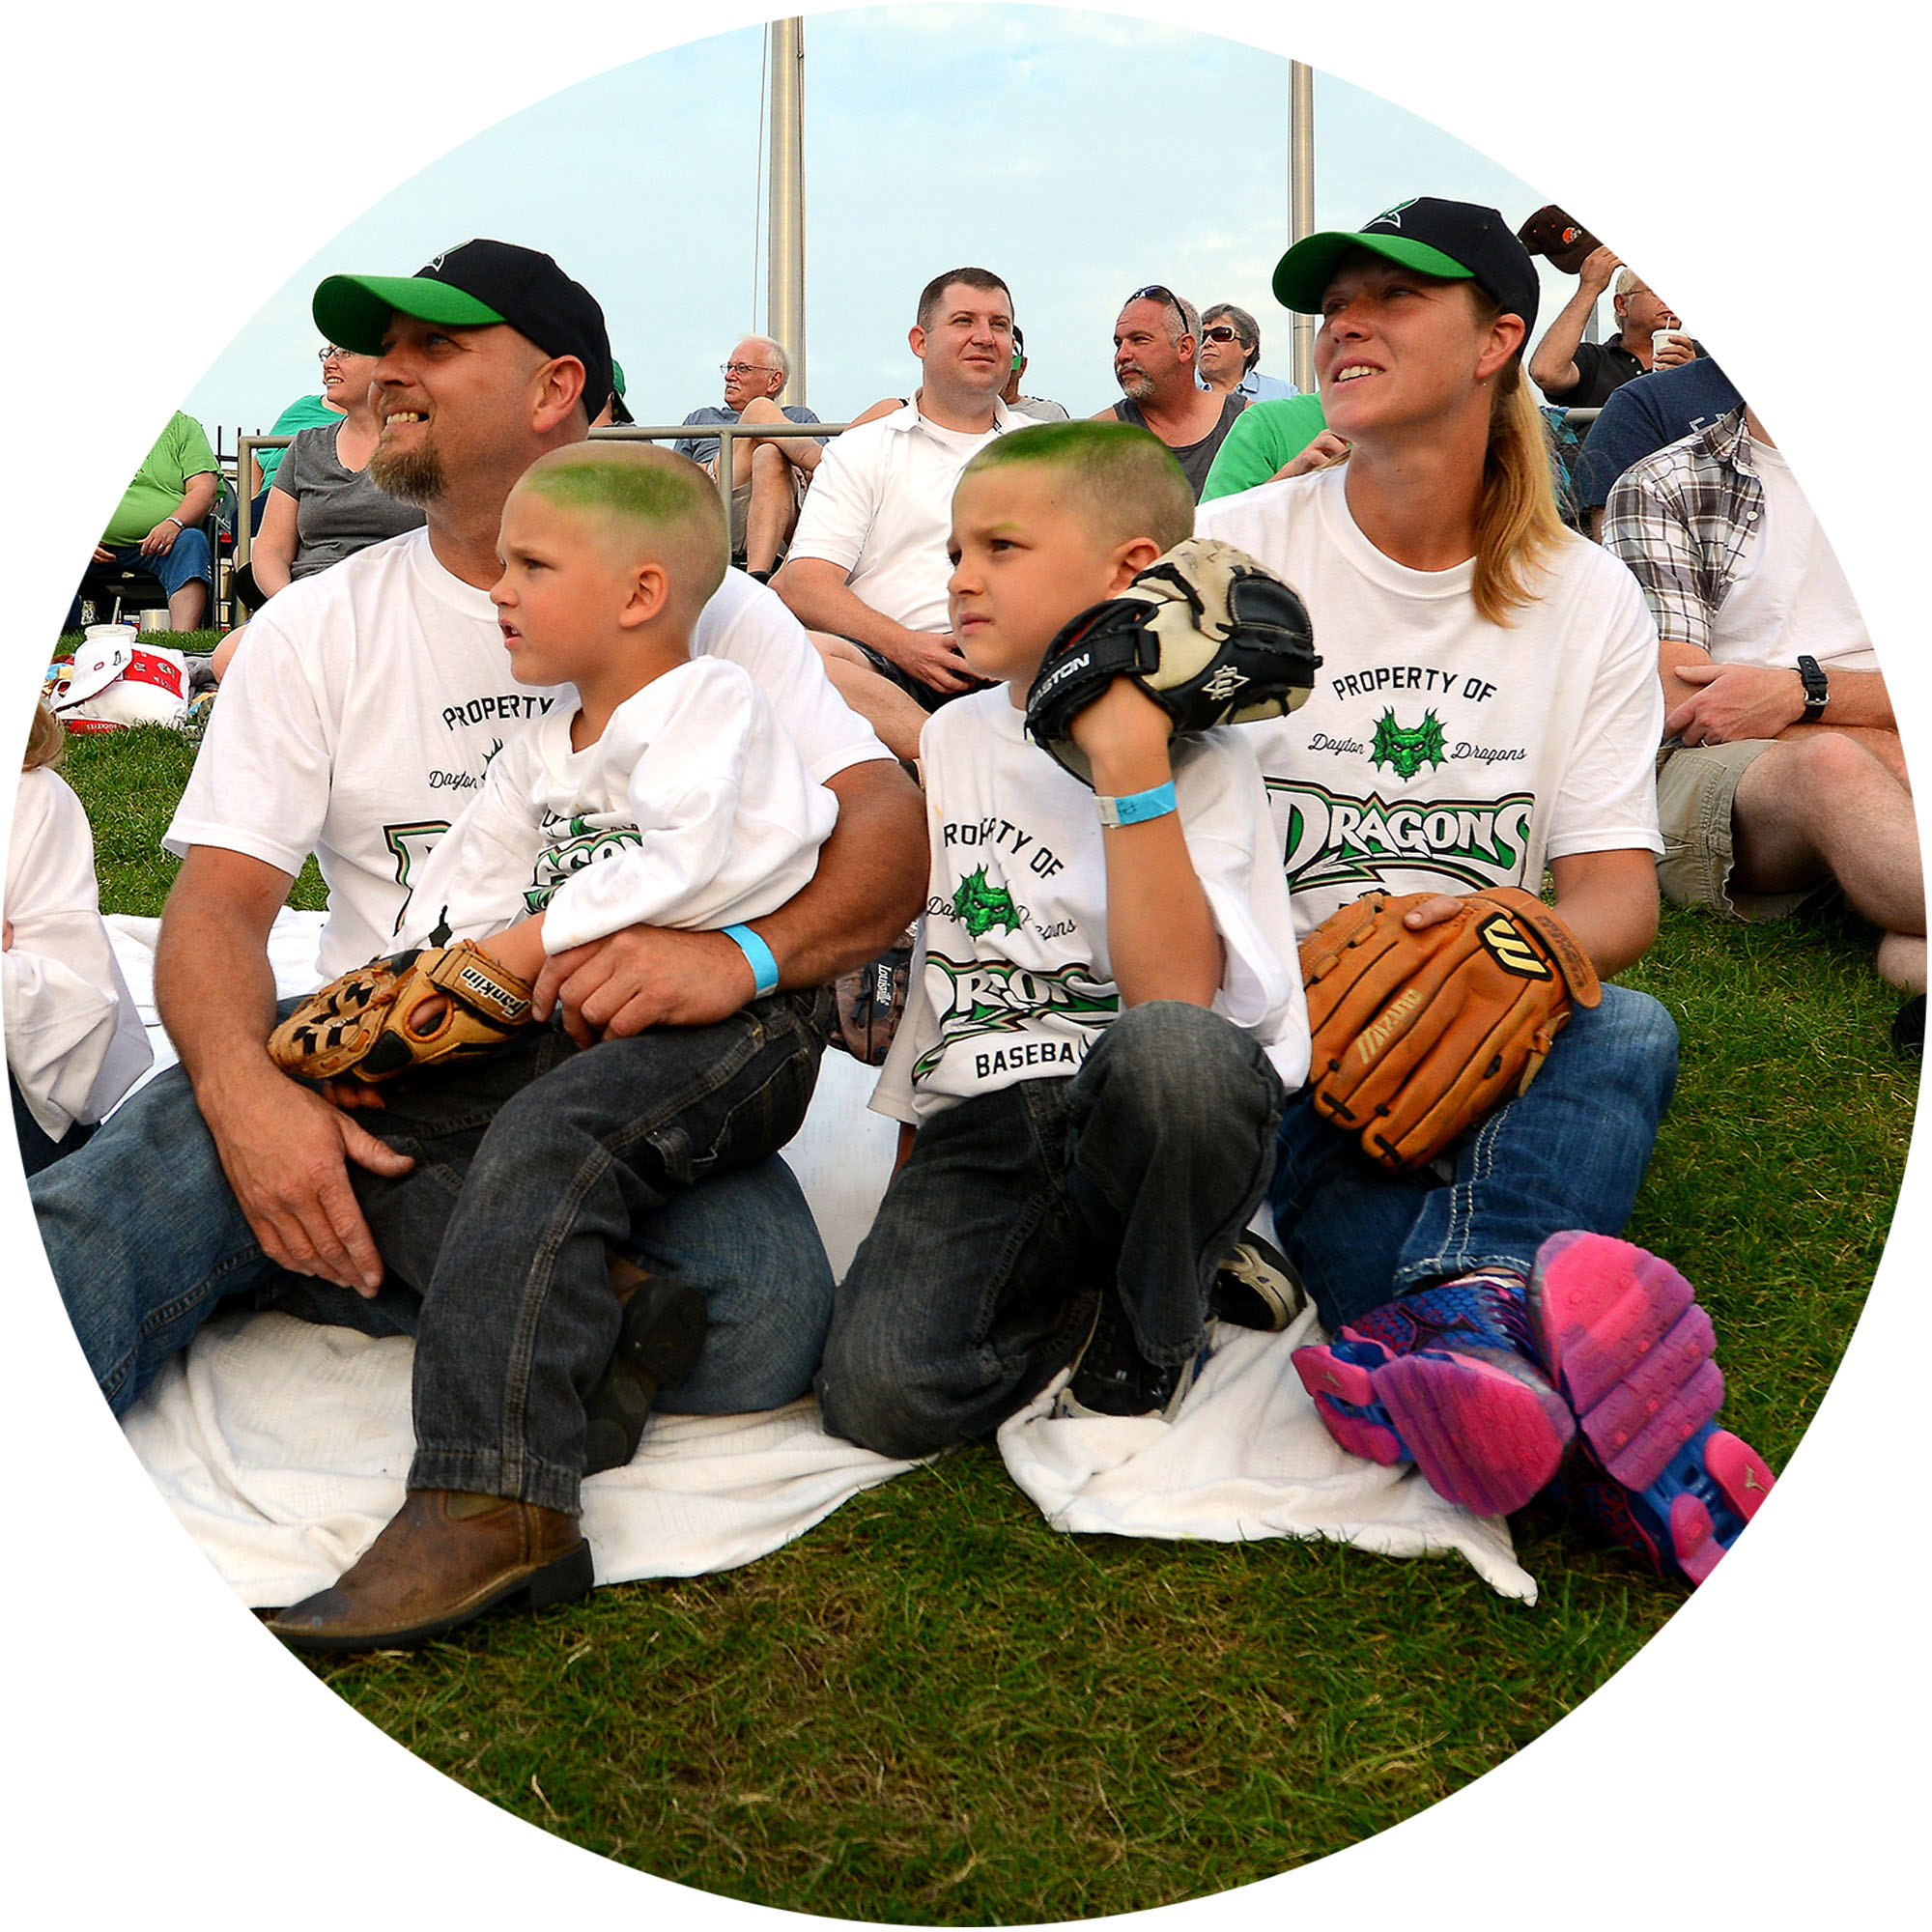 Image of family at Dayton Dragons baseball game